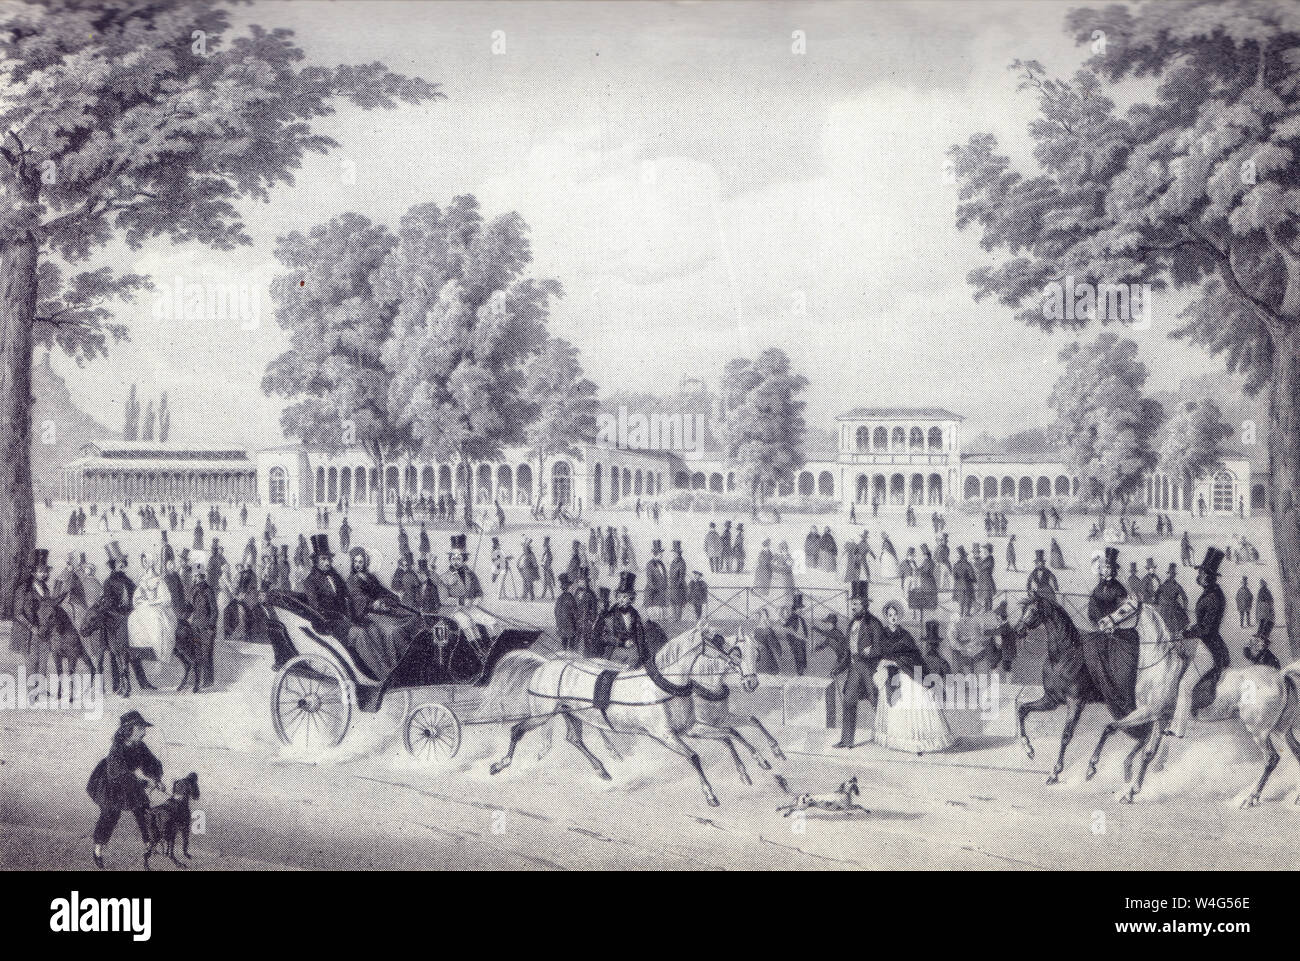 The Iron Fountain Pavilion and the Arkadenbau in Bad Kissingen, Germany. lithograph by Christian Weiss and H kuber 1850 Stock Photo